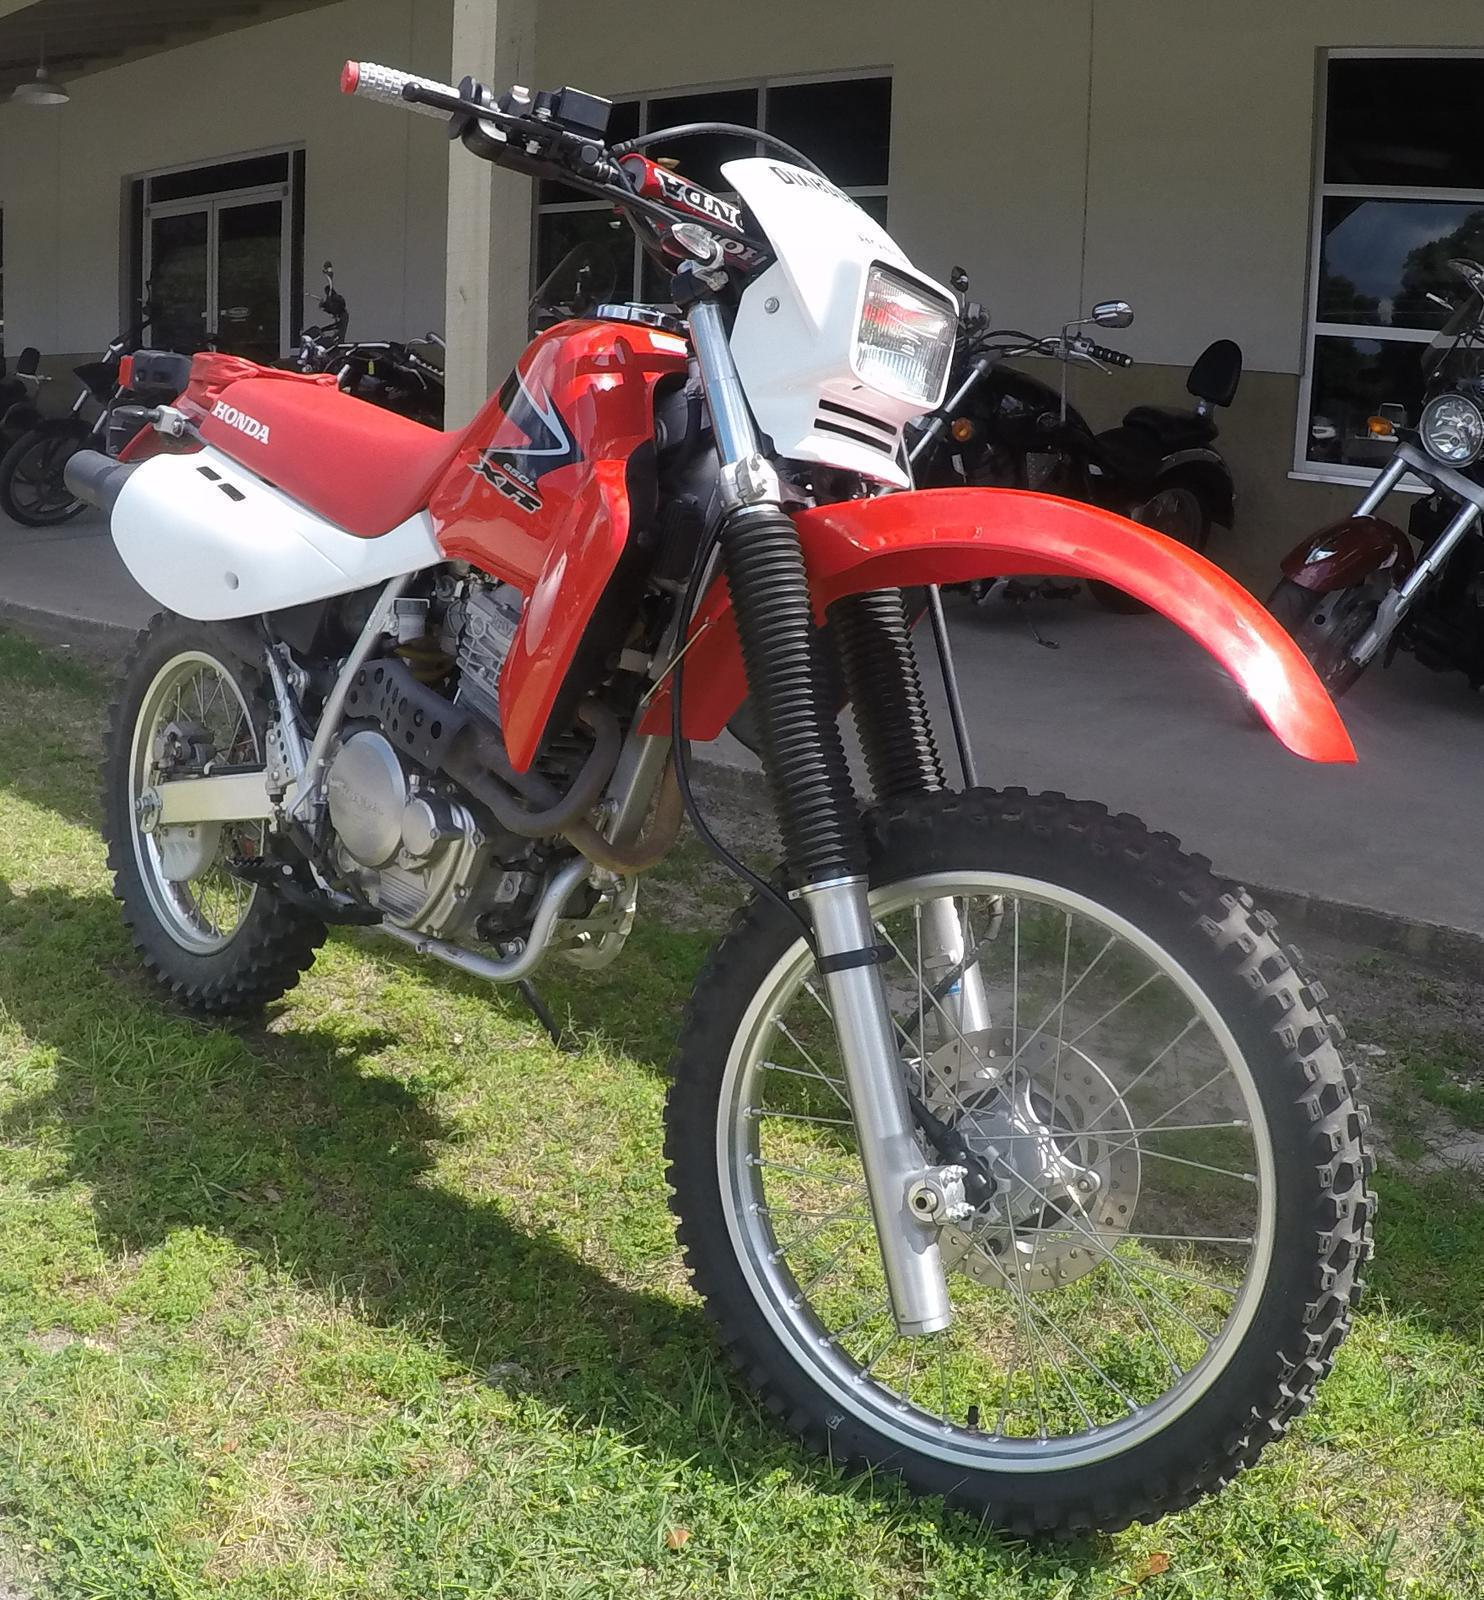 Honda Xr650l For Sale >> 2008 Honda Xr650l Motorcycle From Alachua Fl Today Sale